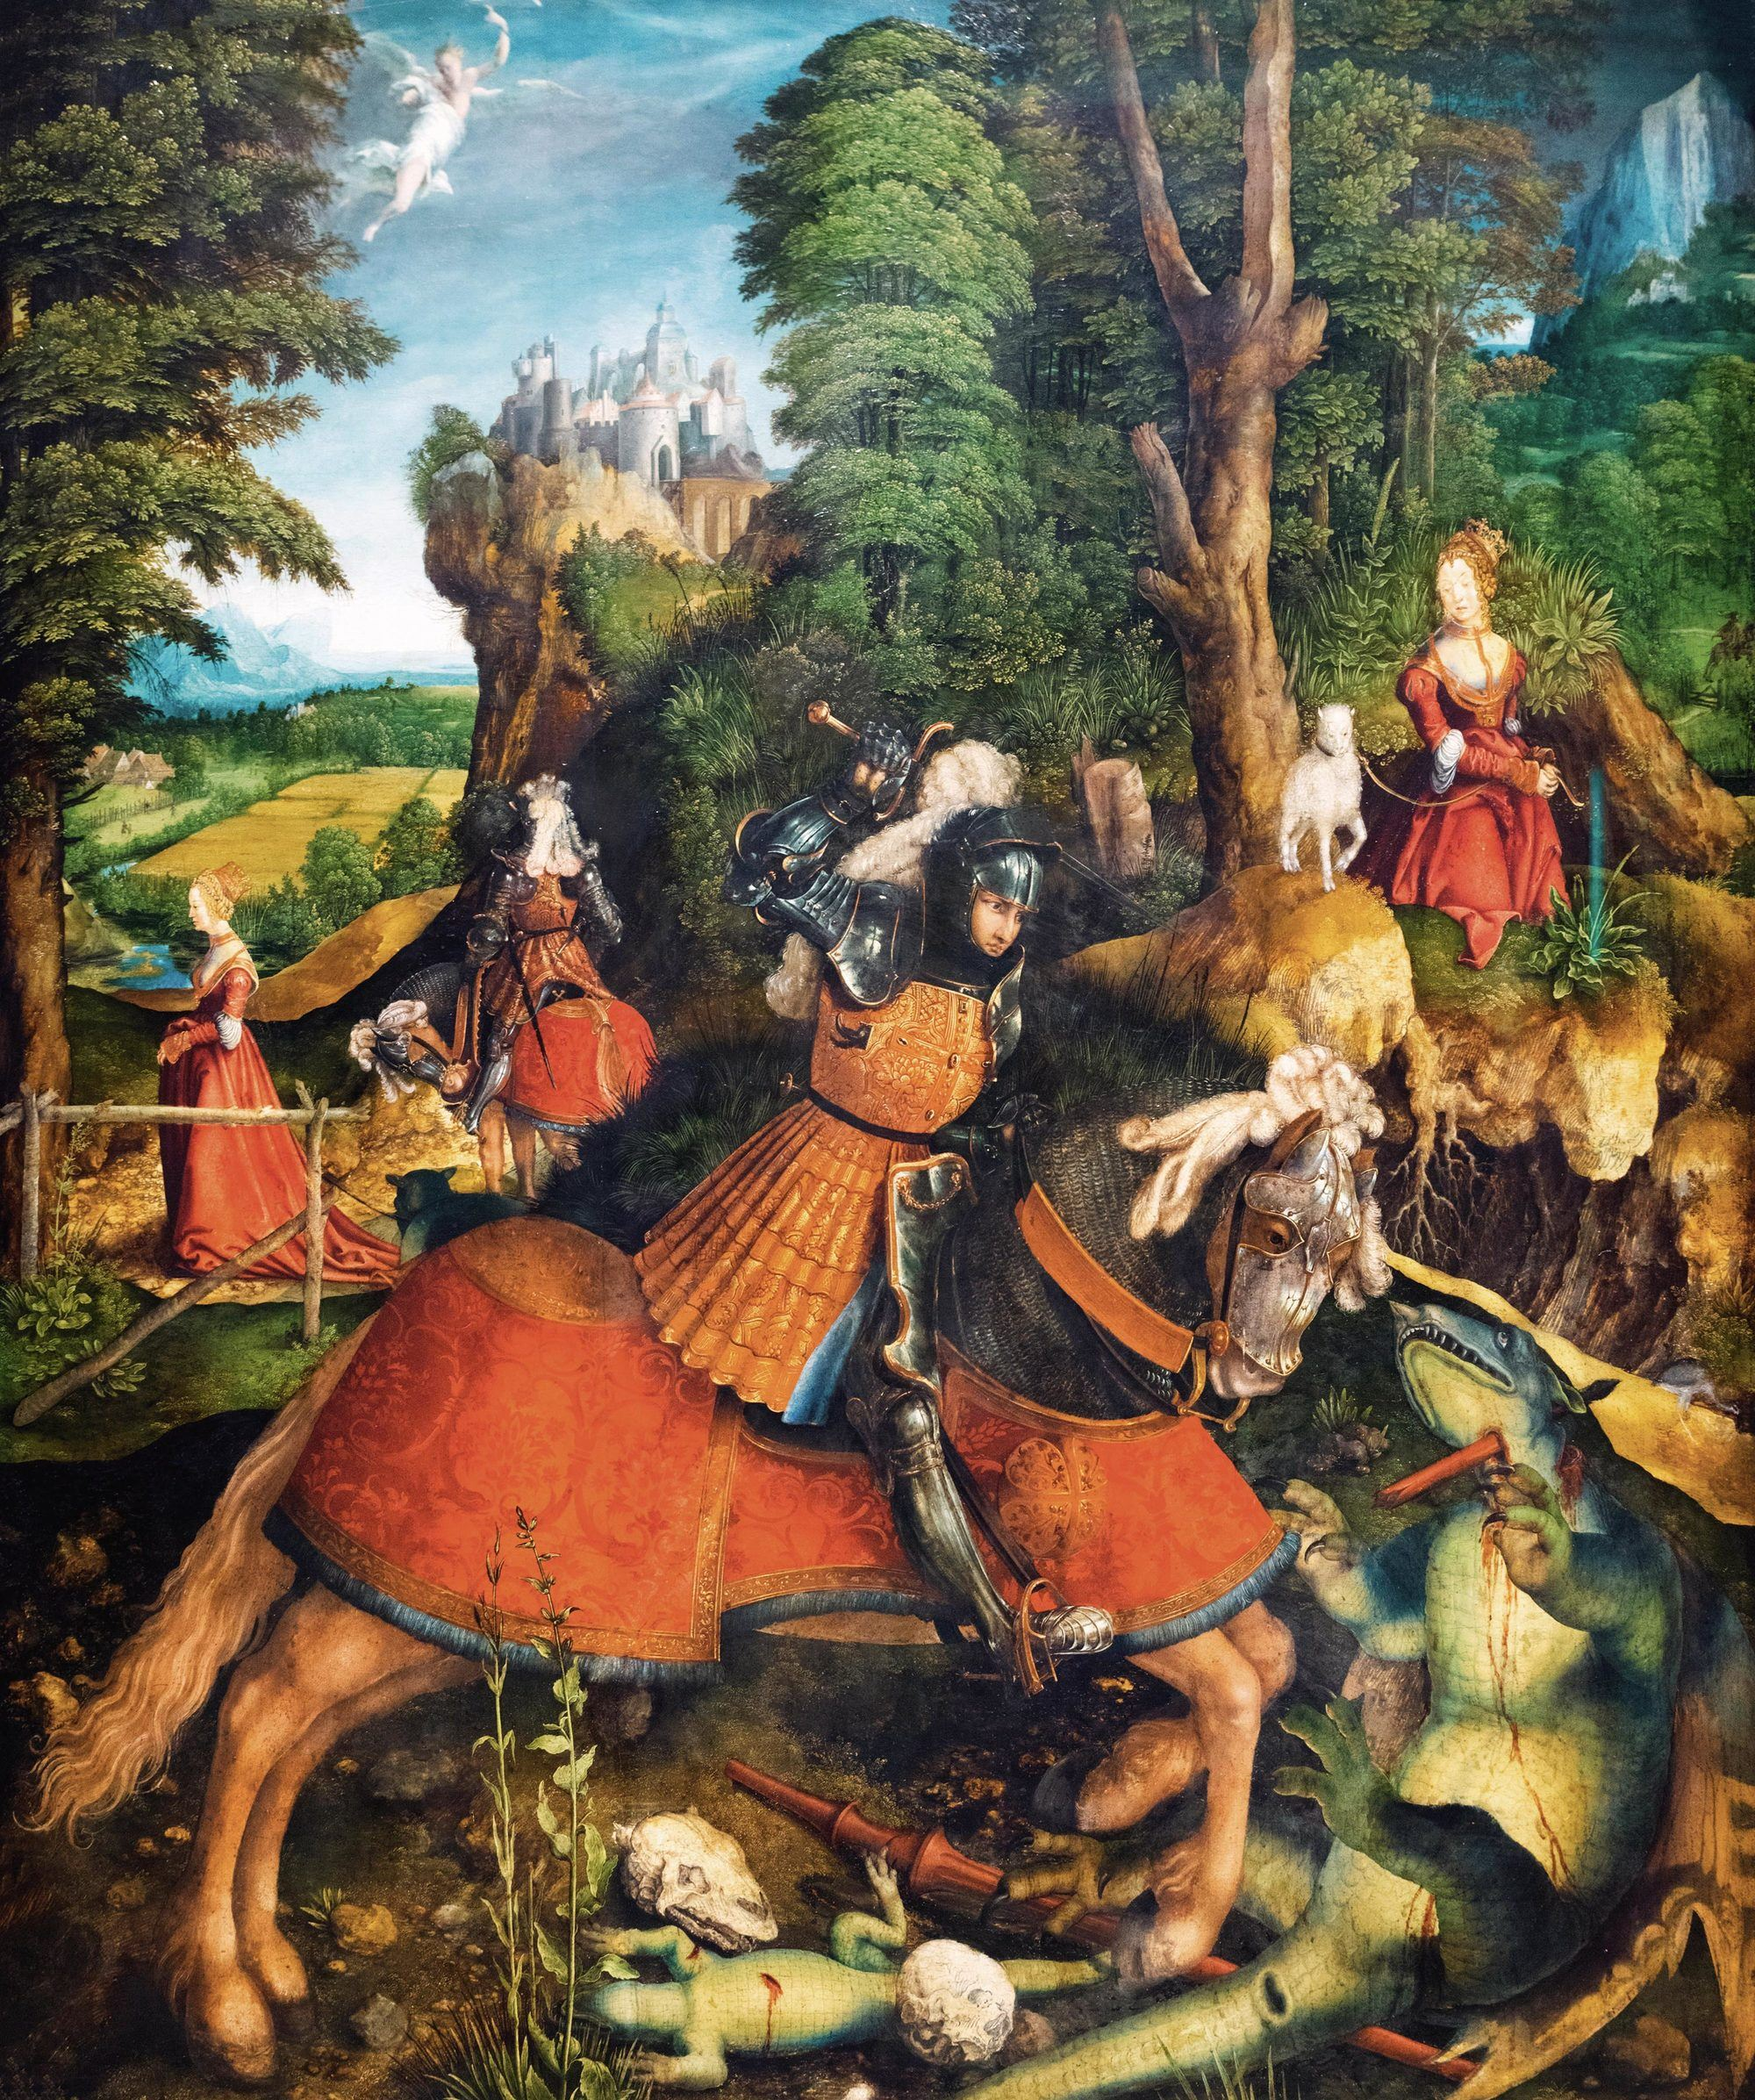 Saint George and the Dragon by Beck